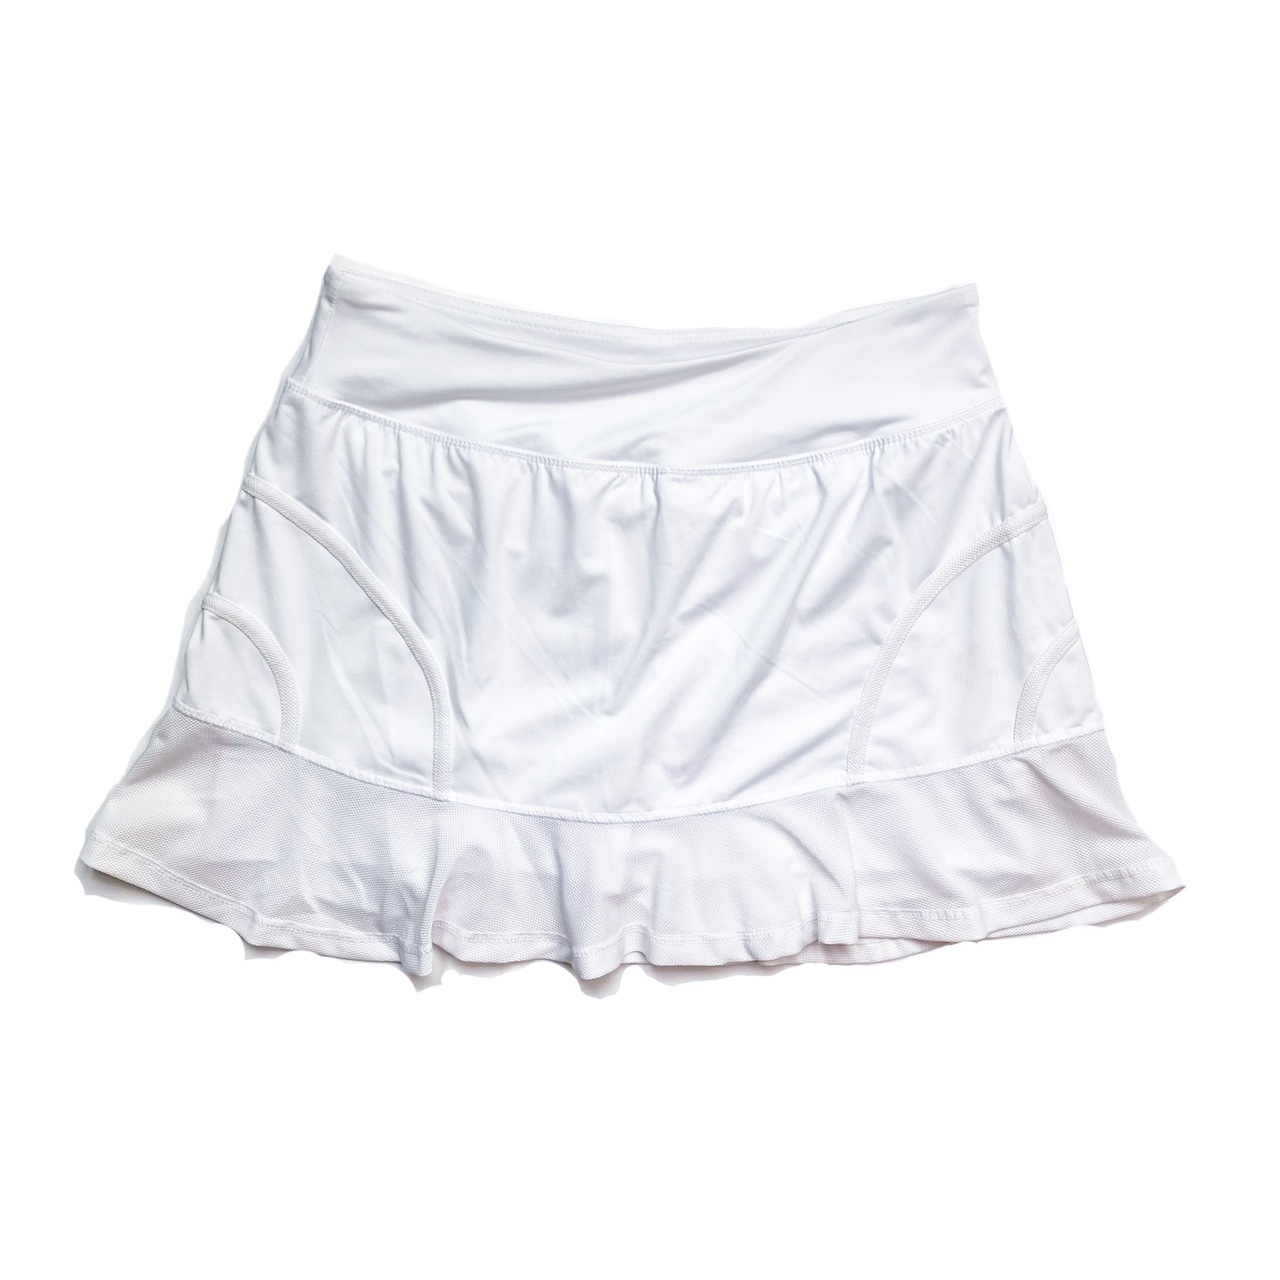 Product Image 1 - kyodan white pleated tennis skirt